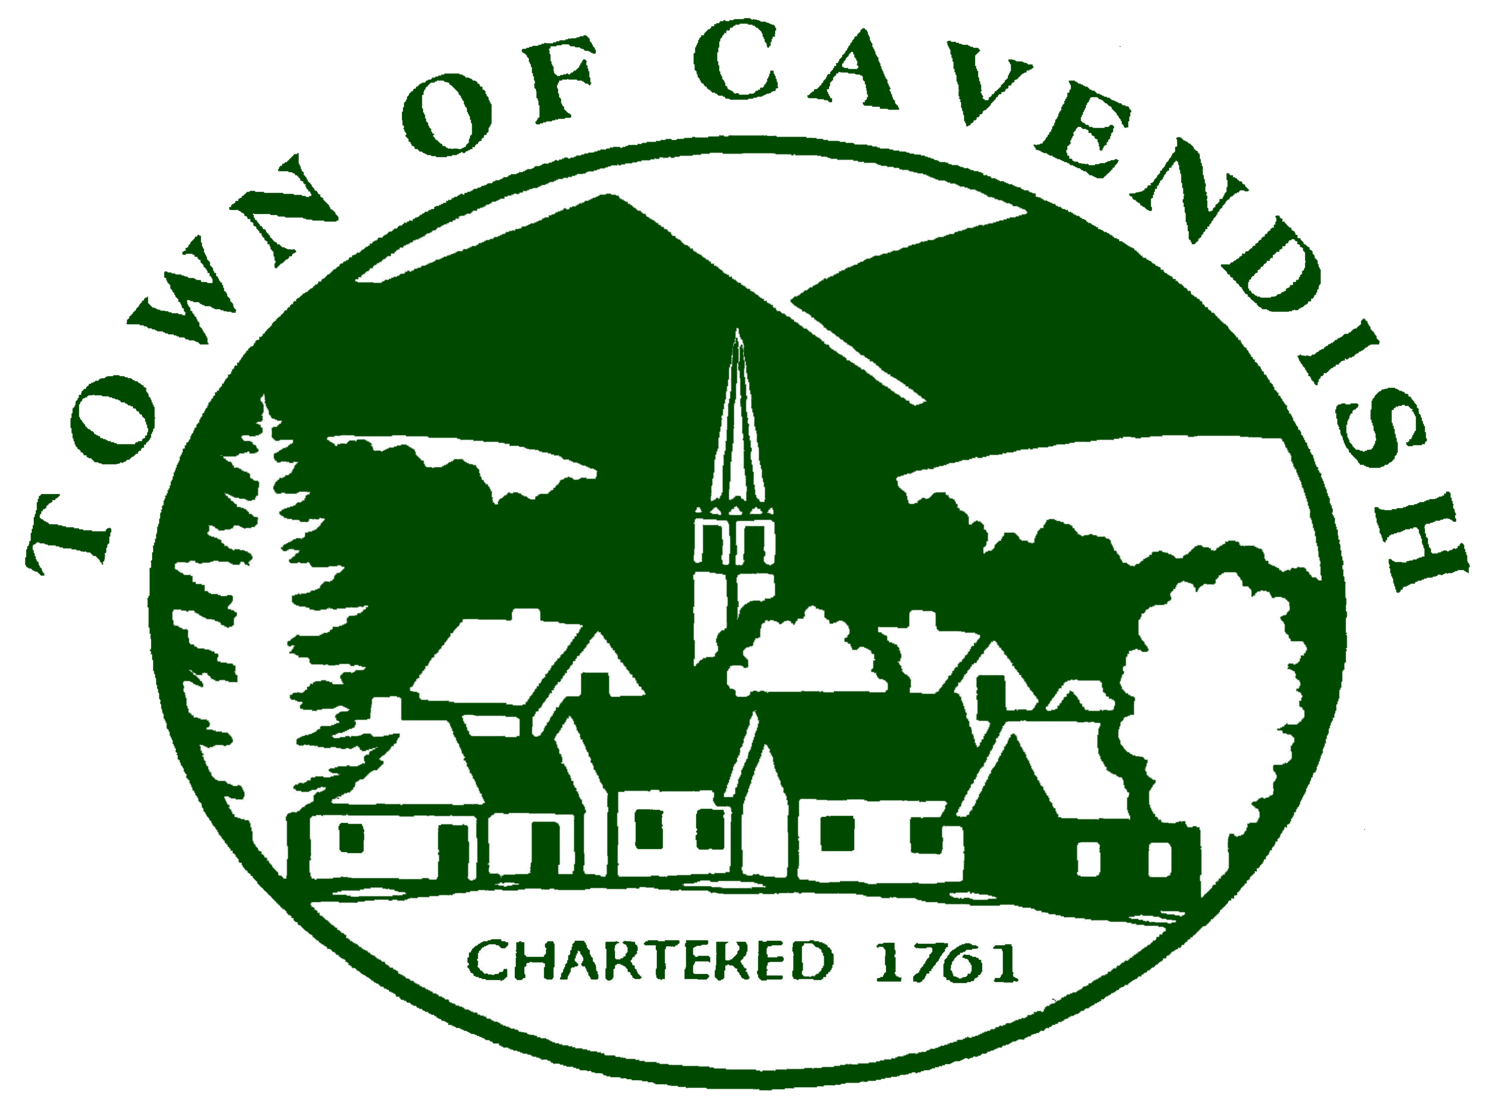 Town of Cavendish, Vermont